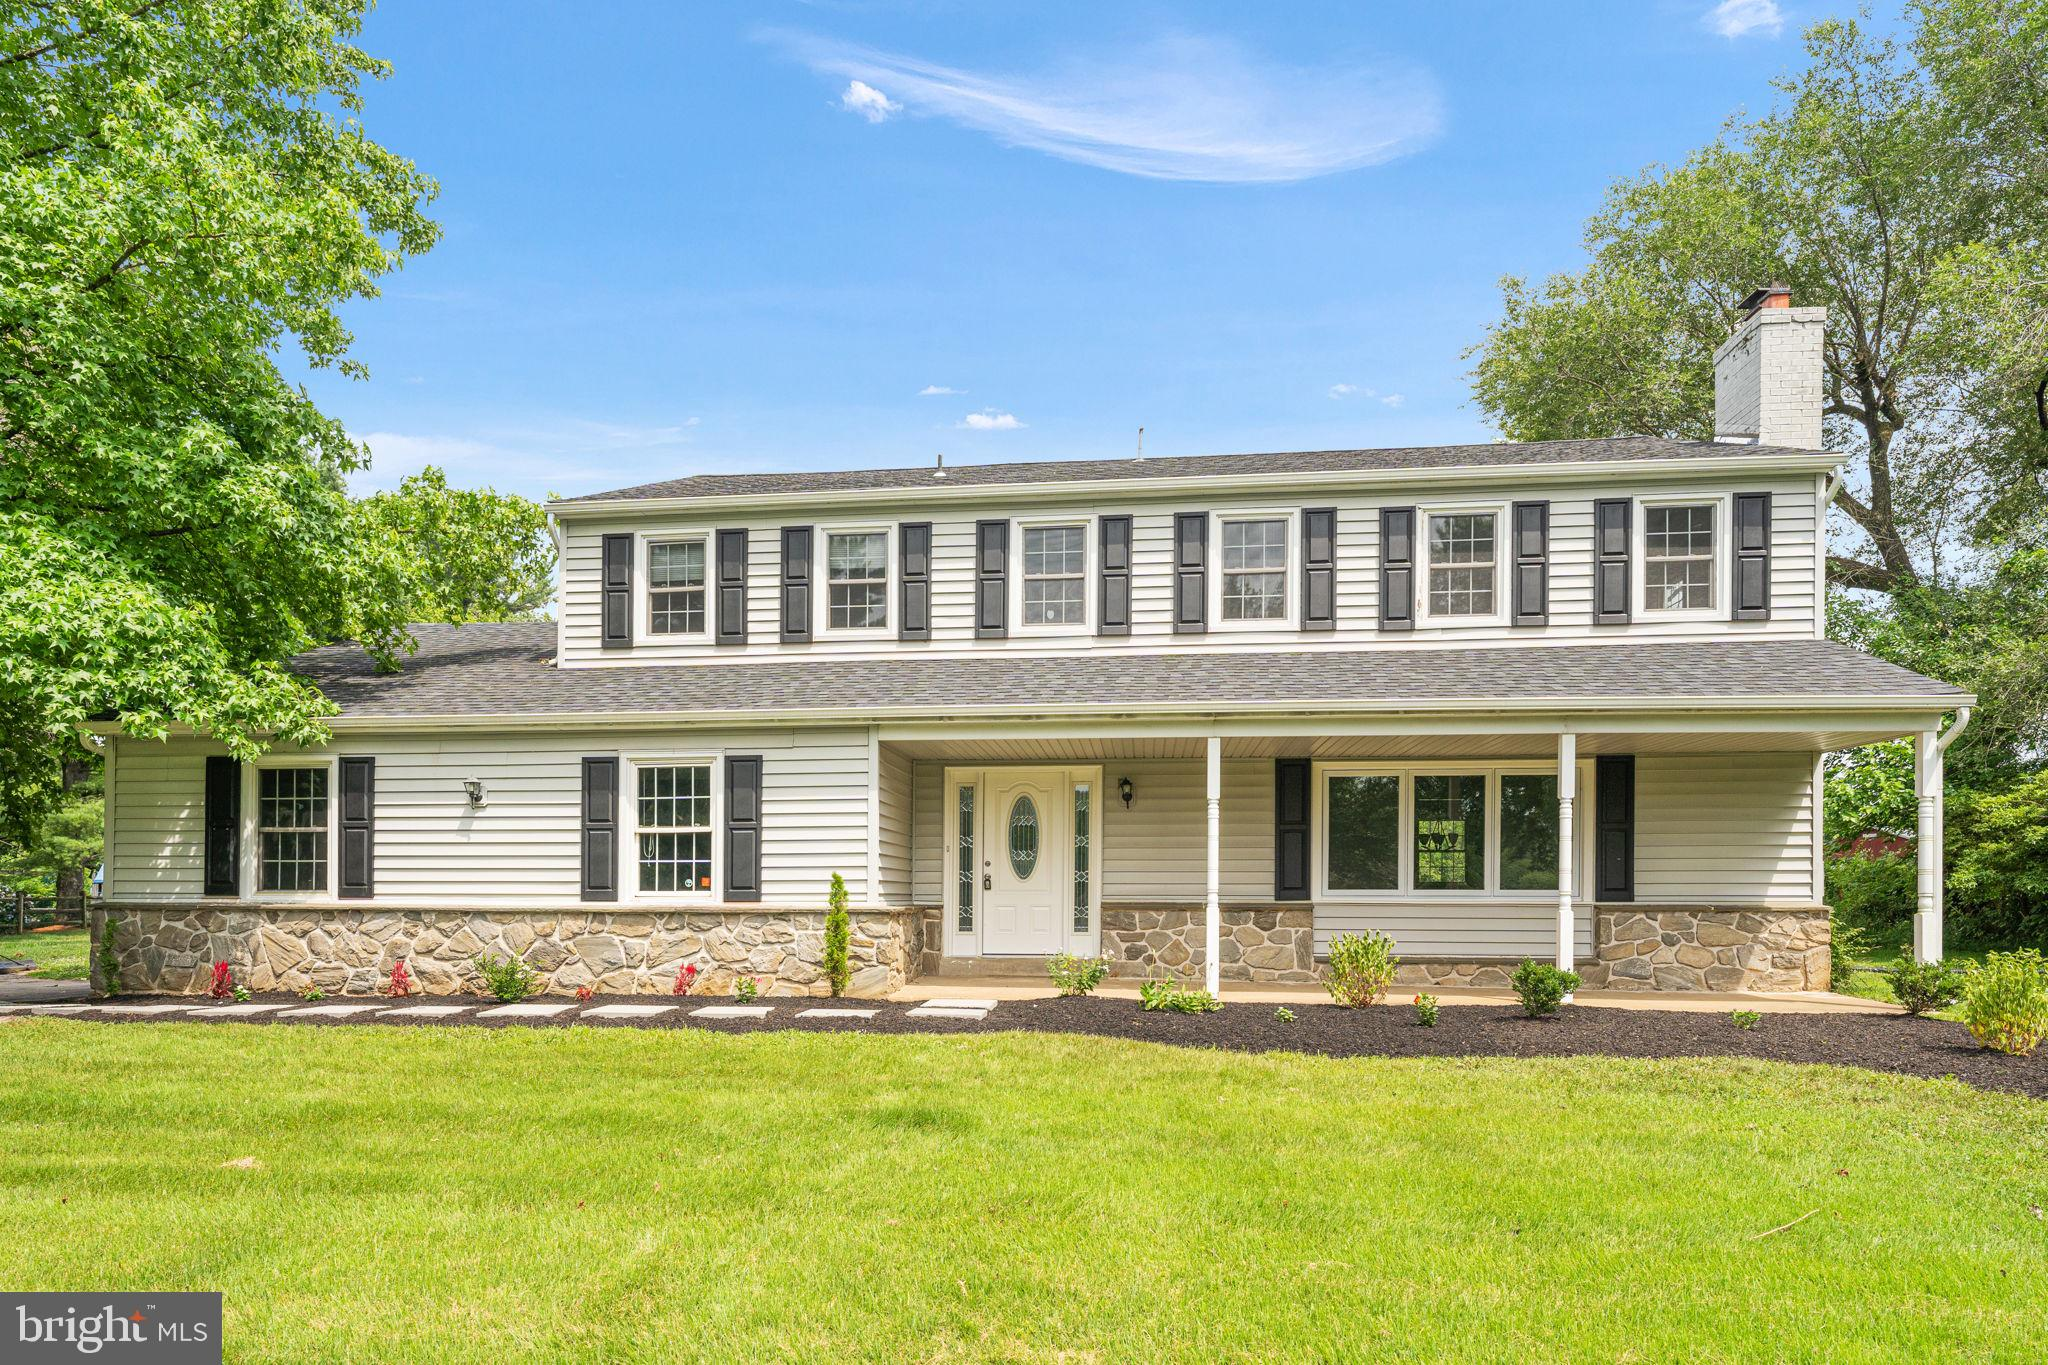 AVAILABLE IMMEDIATELY! Welcome to 7 Line Rd in prestigious Willistown Township, in the award-winning Great Valley School District and only minutes from Malvern Borough shops, restaurants and of course the R5 line at Malvern Train Station. Follow the stepping stone walkway to the front porch which is ready for a few patio chairs to enjoy morning coffee. Step into the entrance hall with living room on the right, hardwood floors, ceiling fan and wood-burning fireplace. Follow to the spacious dining room with hardwood floors and into the updated eat-in kitchen with tile floor, granite countertops, and gas cooking. Continue to the step-down updated powder room, laundry room with man door to the rear patio and the tile-floor family room with sliding glass doors to the patio and LARGE level lot ready for soccer playing! The 2nd floor has the primary bedroom with hardwood floors and ceiling fan as well as the updated, light, bright en suite bathroom with high vanity and an oversized step in tile shower. There are 2 more generously sized bedrooms each with hardwood floors and ceiling fans. These 2 bedrooms are served by the updated hall bathroom. The lower level is finished & wide open, perfect for that much needed TV/recreation room space.